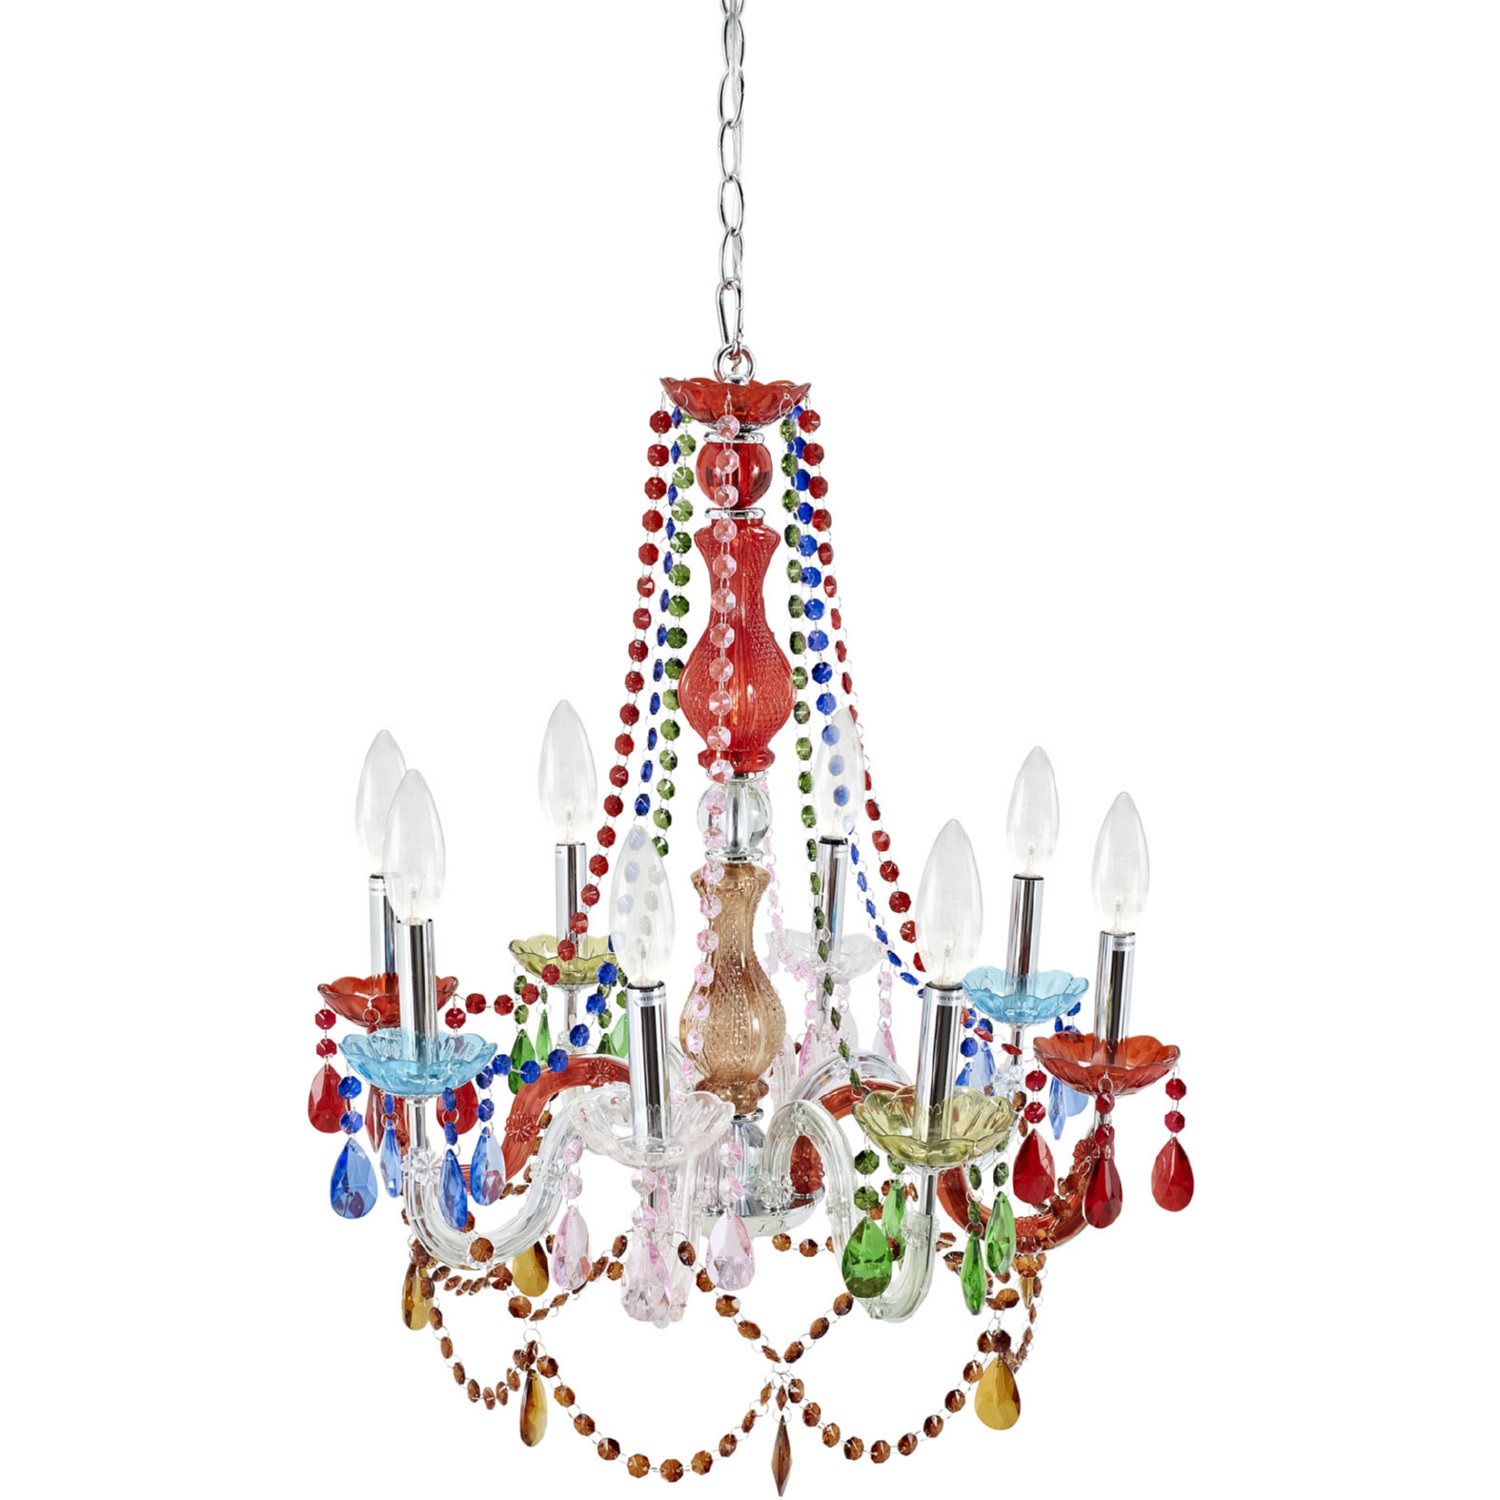 Modway Palace Acrylic Chandelier In Multicolored Tap To Expand